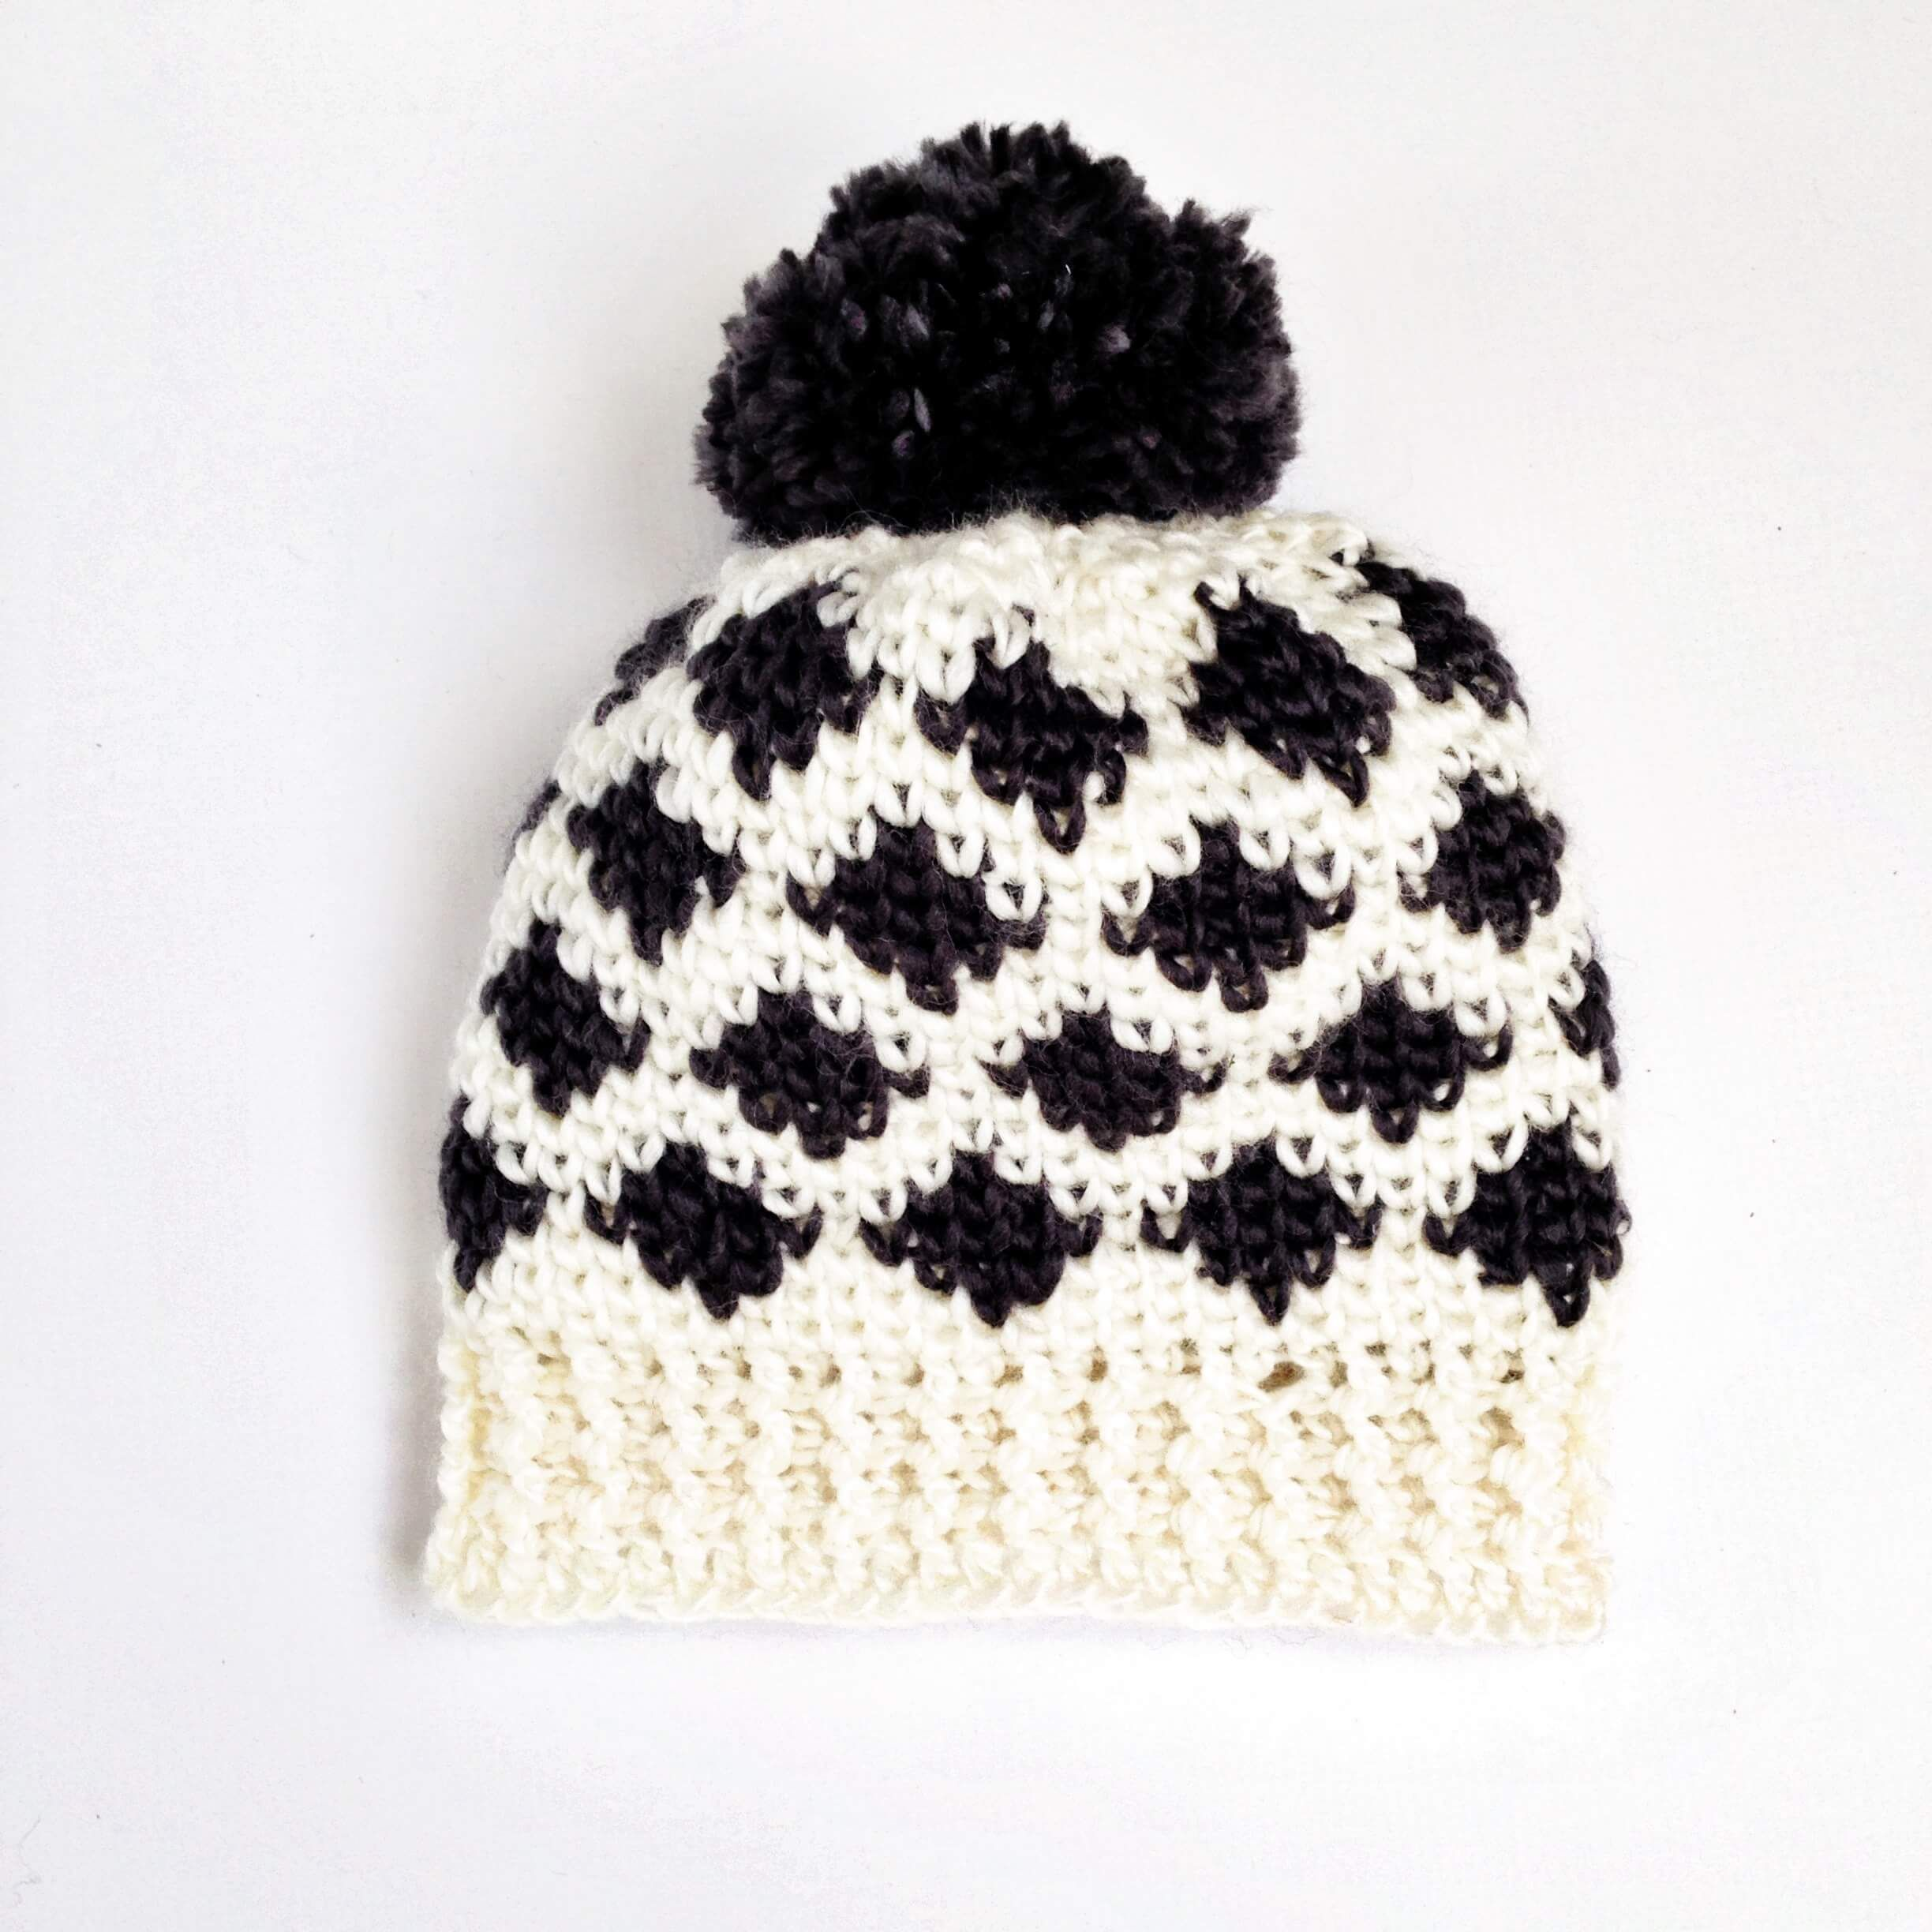 8 Of The Best Fair Isle Crochet Patterns You Will Love | Gorros